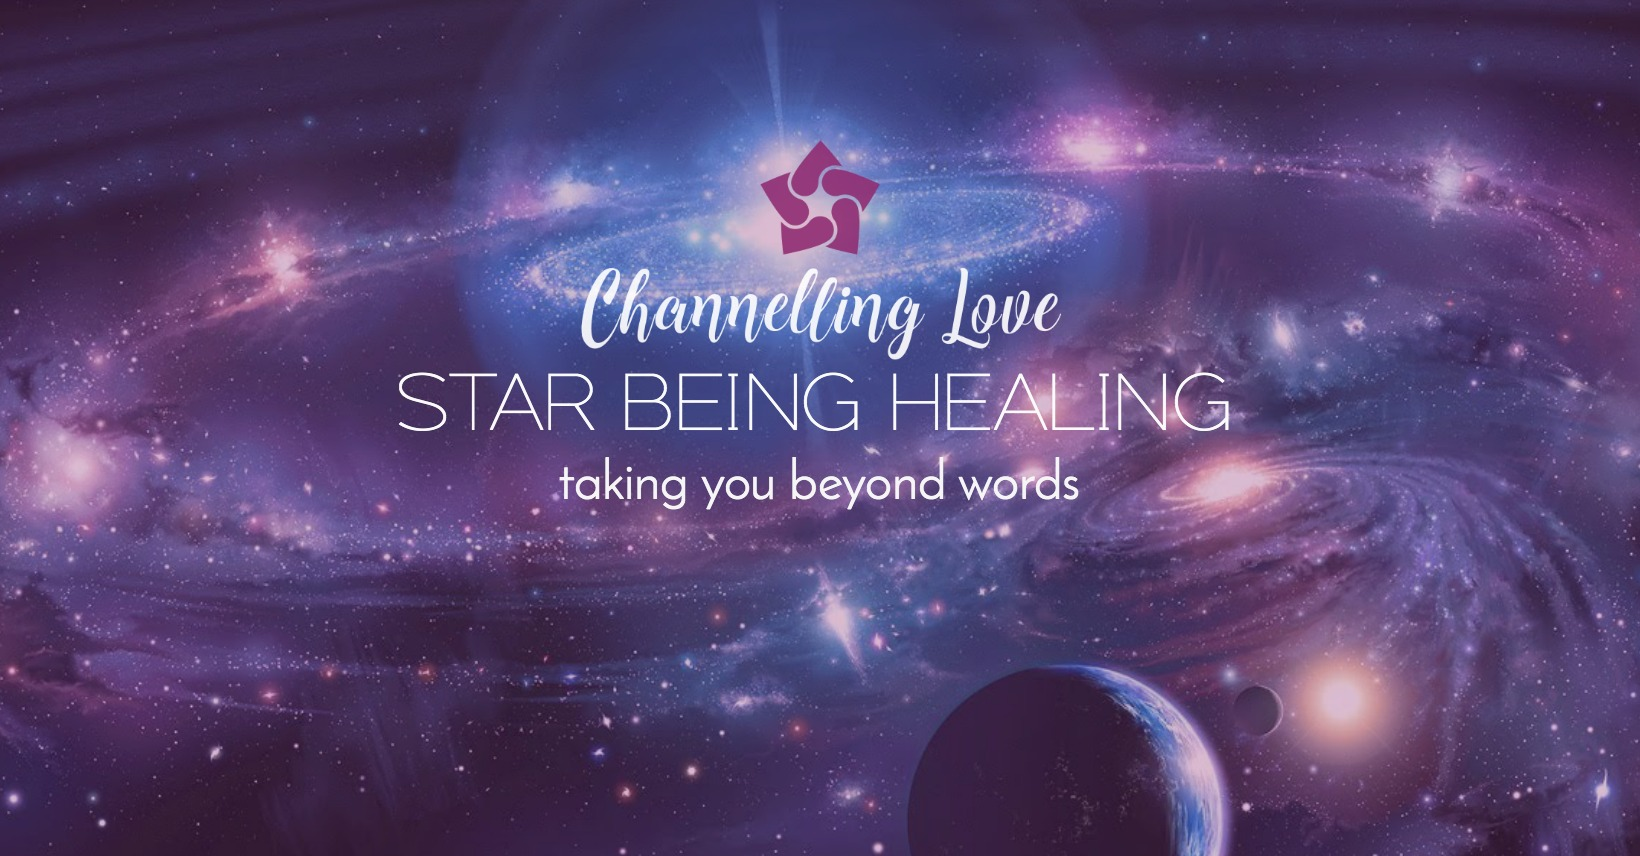 CLICK HERE TO FIND OUT MORE ABOUT CHANNELLING LOVE'S PURE HEALING TRANSMISSIONS